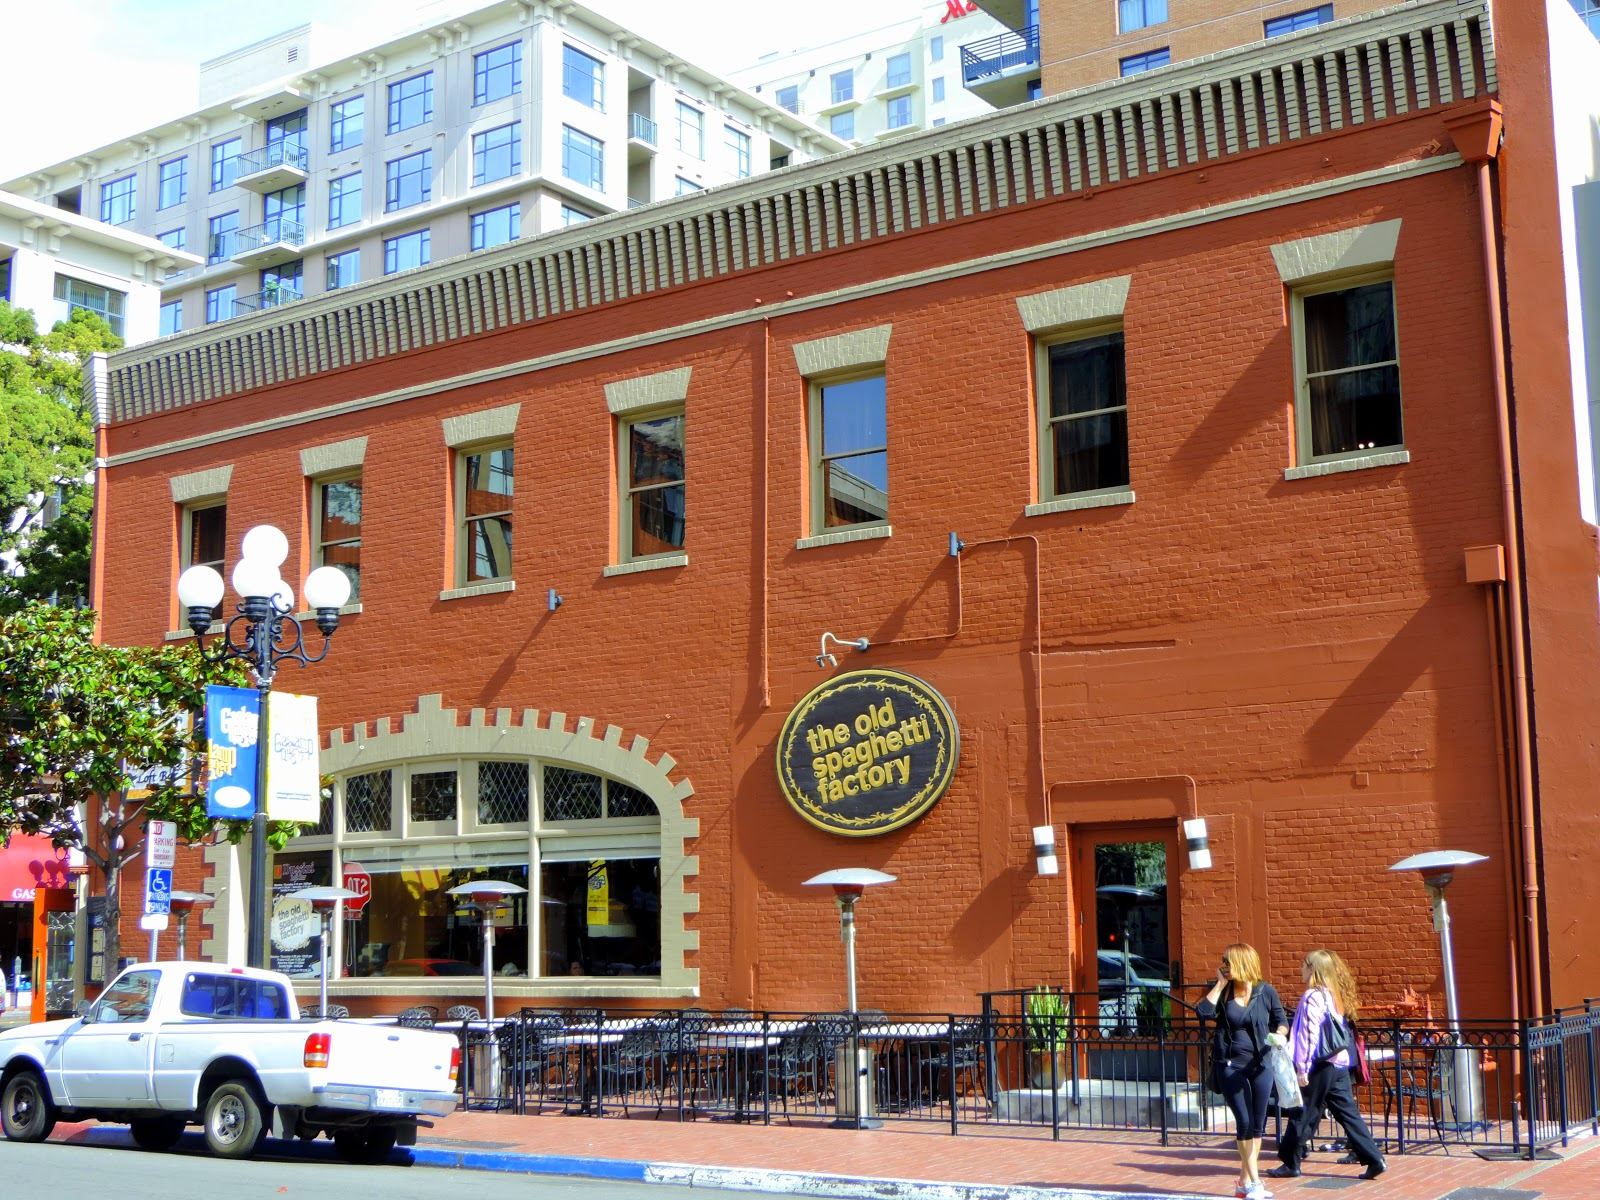 The Old Spaghetti Factory has provided many generations of San Diegans with warm memories and consistently great service and the tradition continues to this day. If you want to learn more about the beautiful, historic buildings in the Gaslamp, take an Historical Walking Tour on Thursdays at 1 p.m. or Saturdays at 11 a.m.